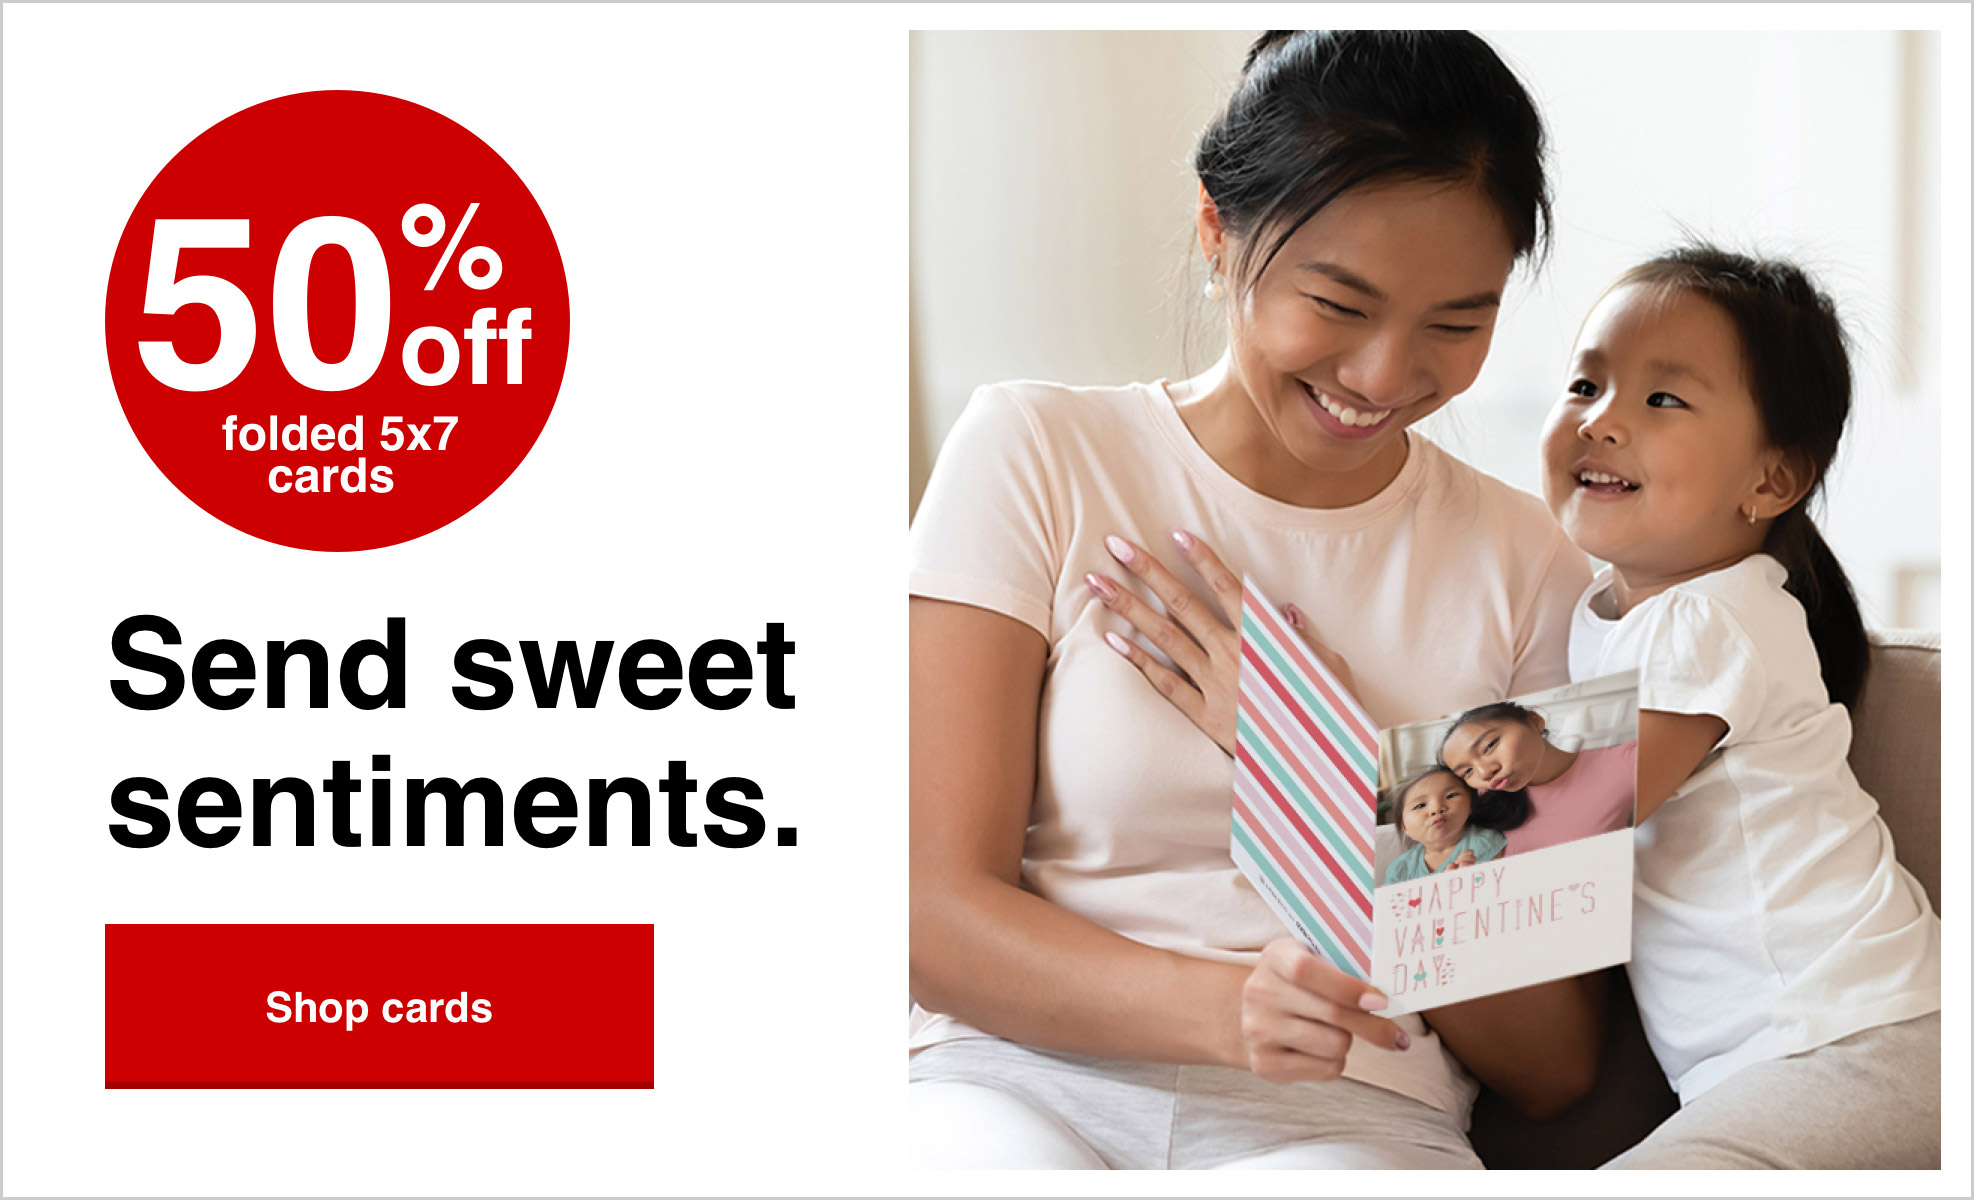 50% off cards with Promo Code 50CARDS Offer ends 1/30/21. Shop now >